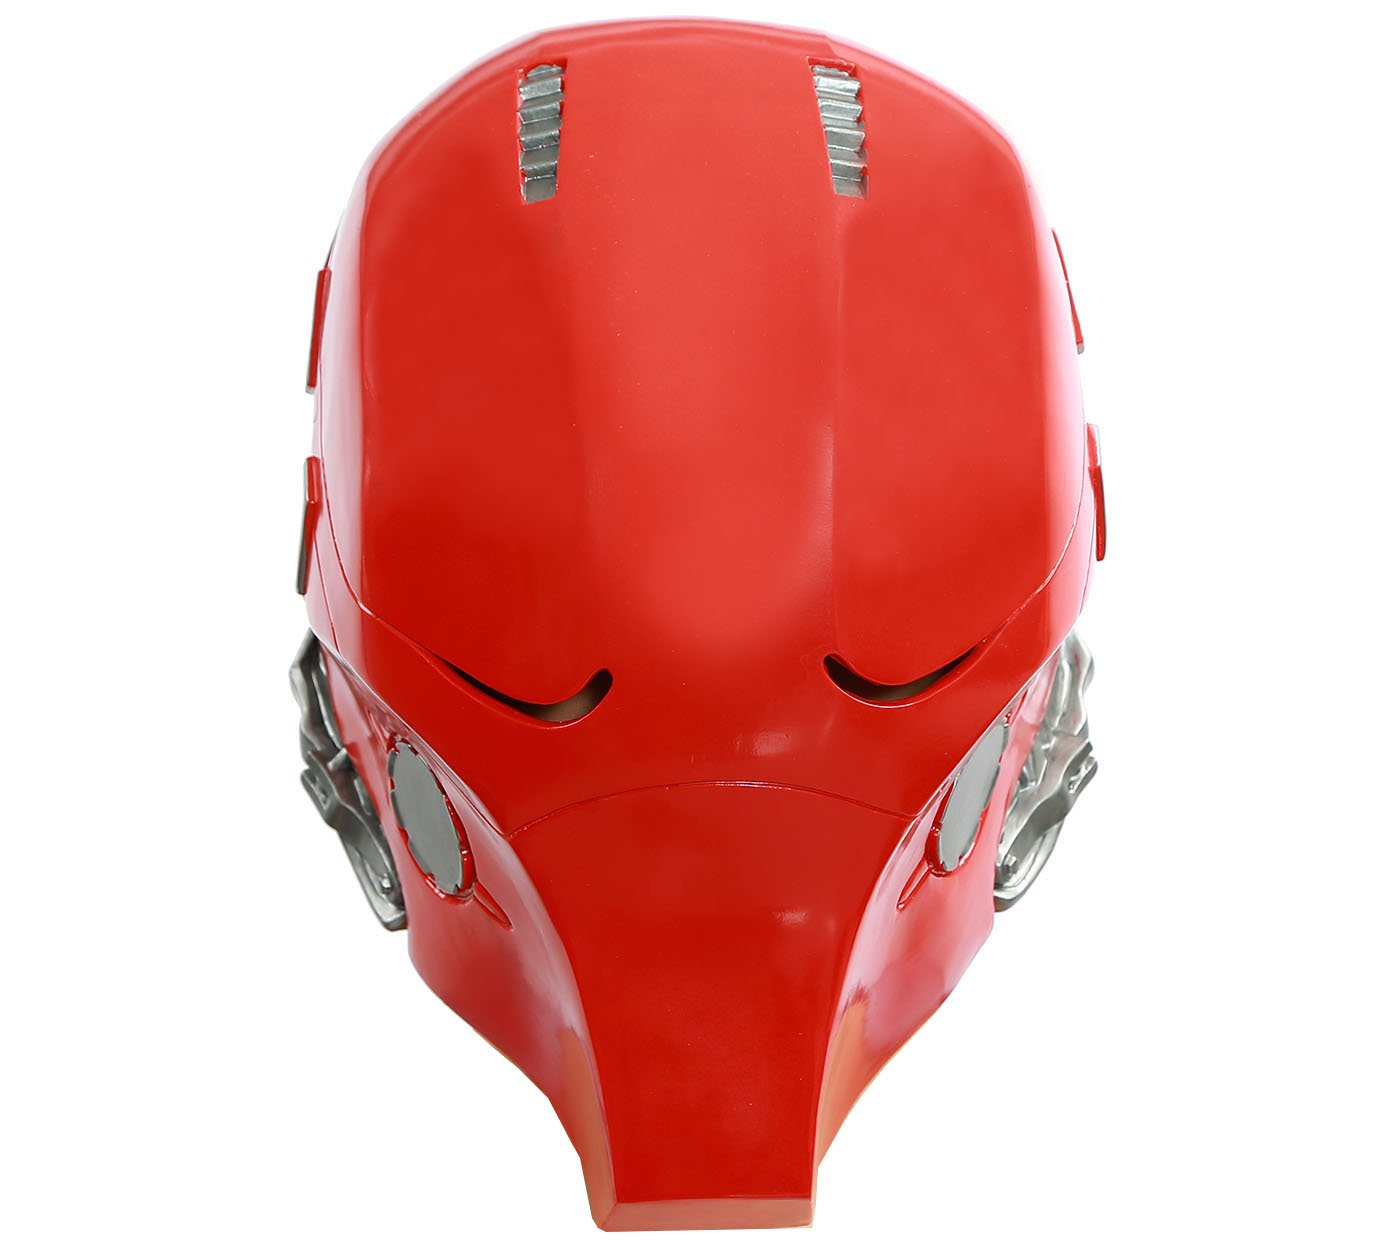 Updated Red Hood Mask PVC Helmet Full Head Adult Halloween Collectable Xcoser V2